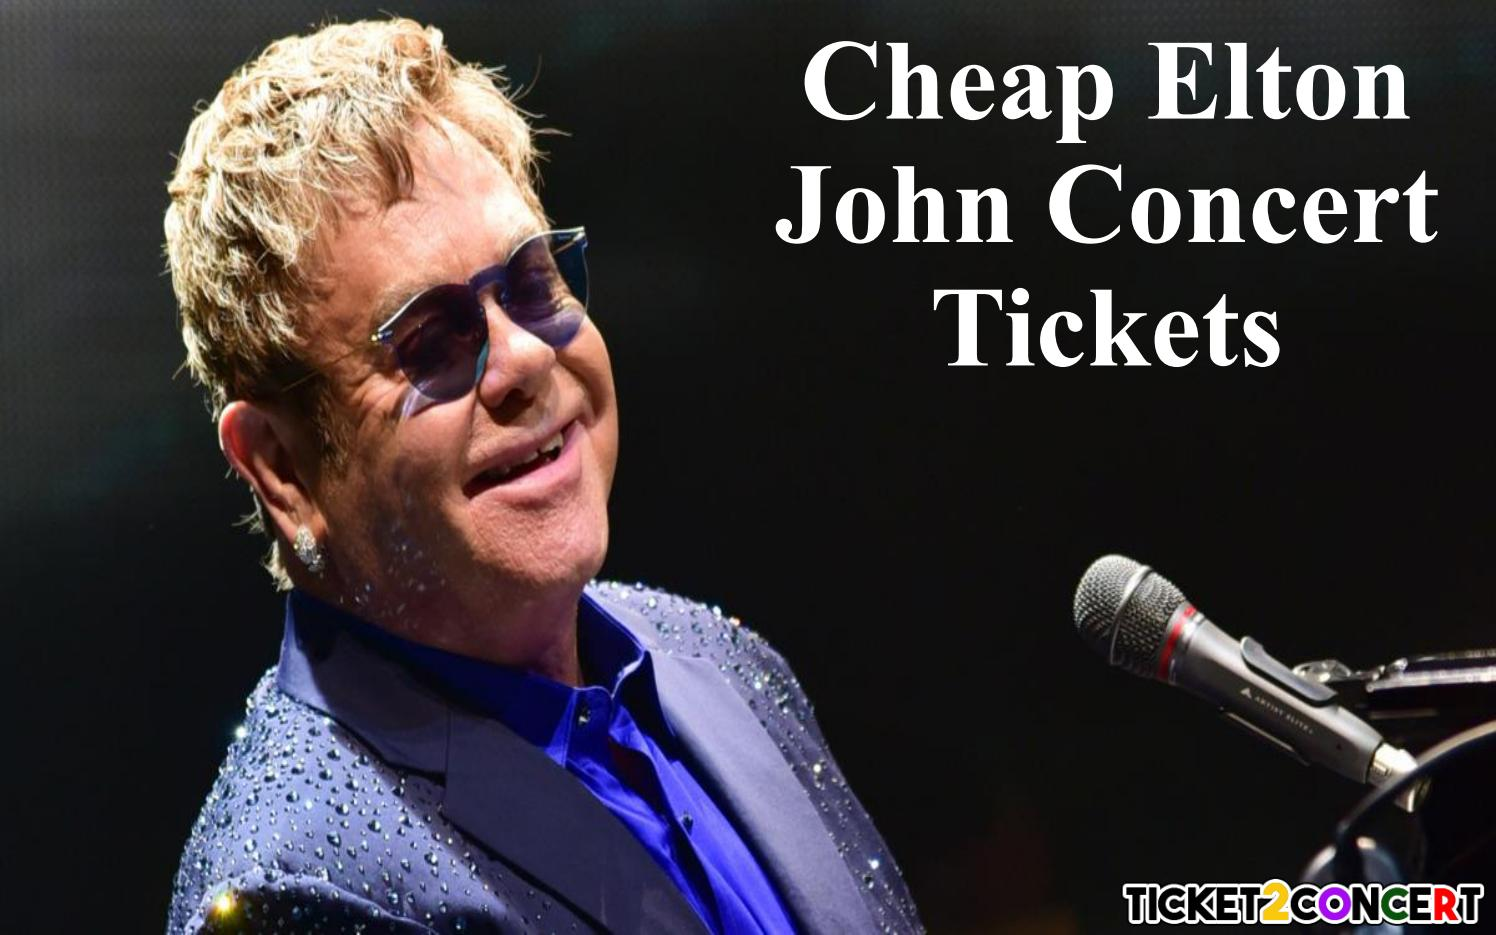 Cheap Tickets Concert >> Elton John Concert Cheap Tickets By Olivia Ava Issuu